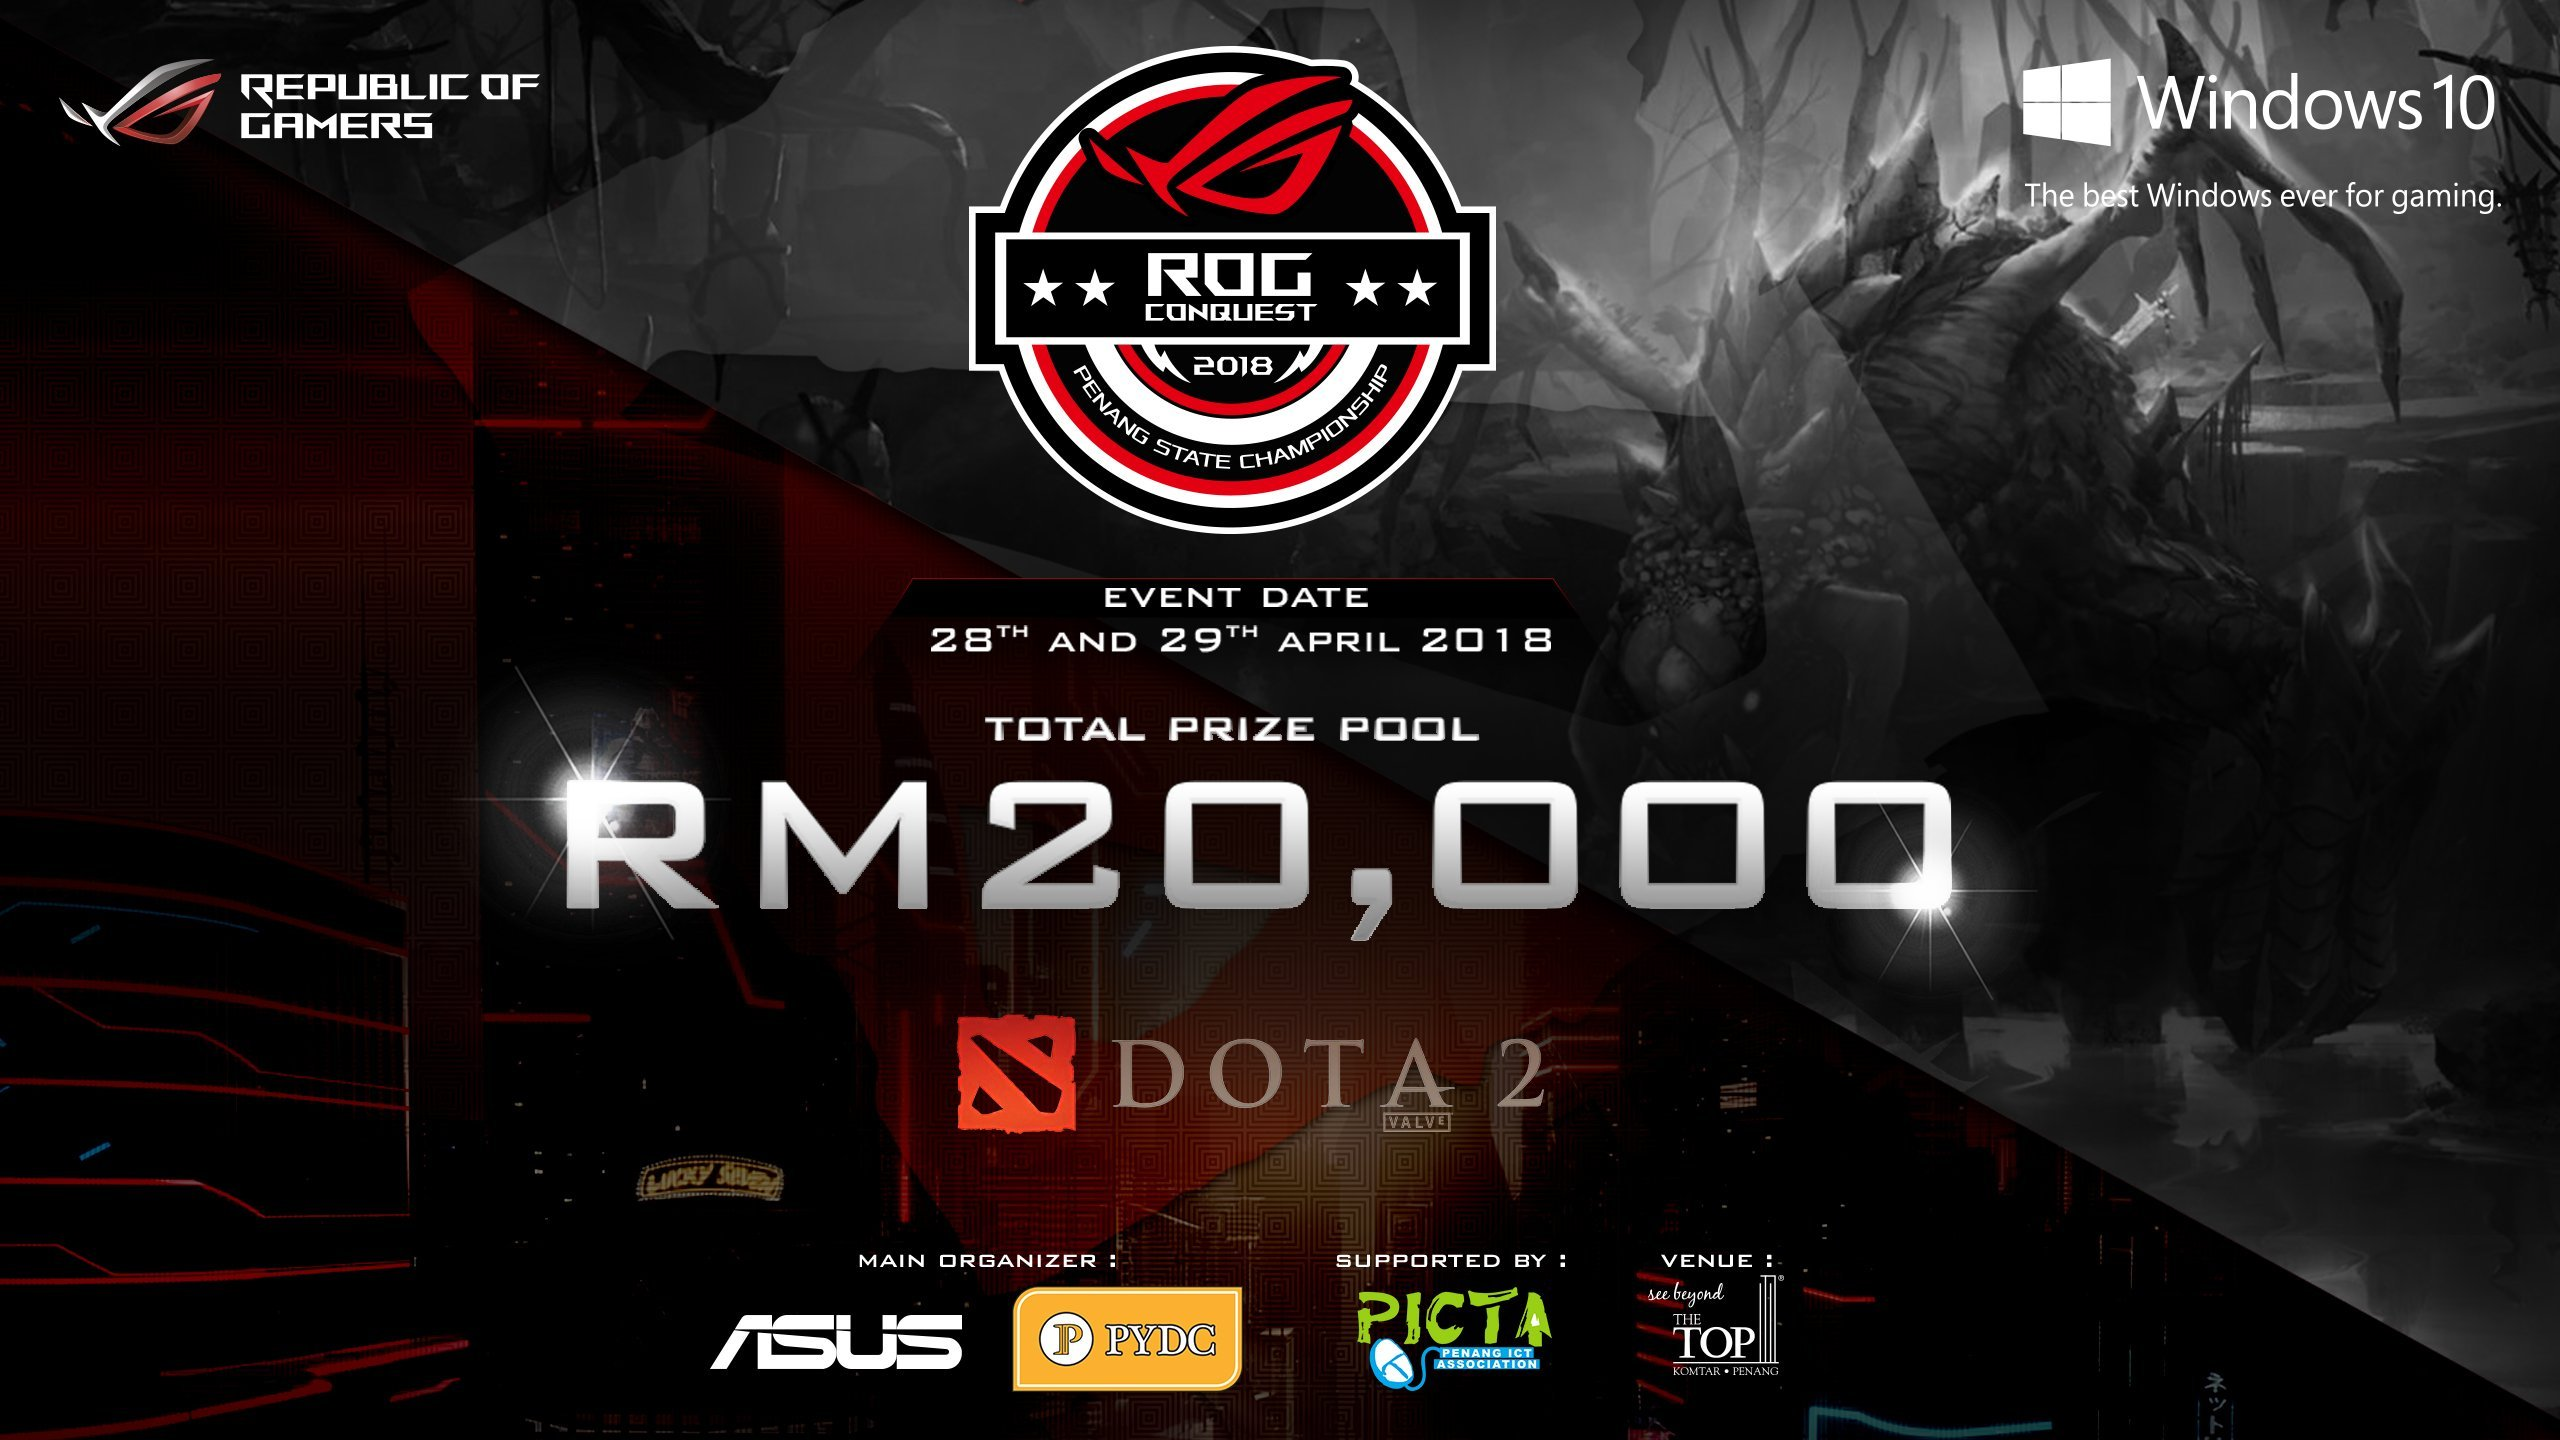 asus rog launches dota 2 tournament penang state